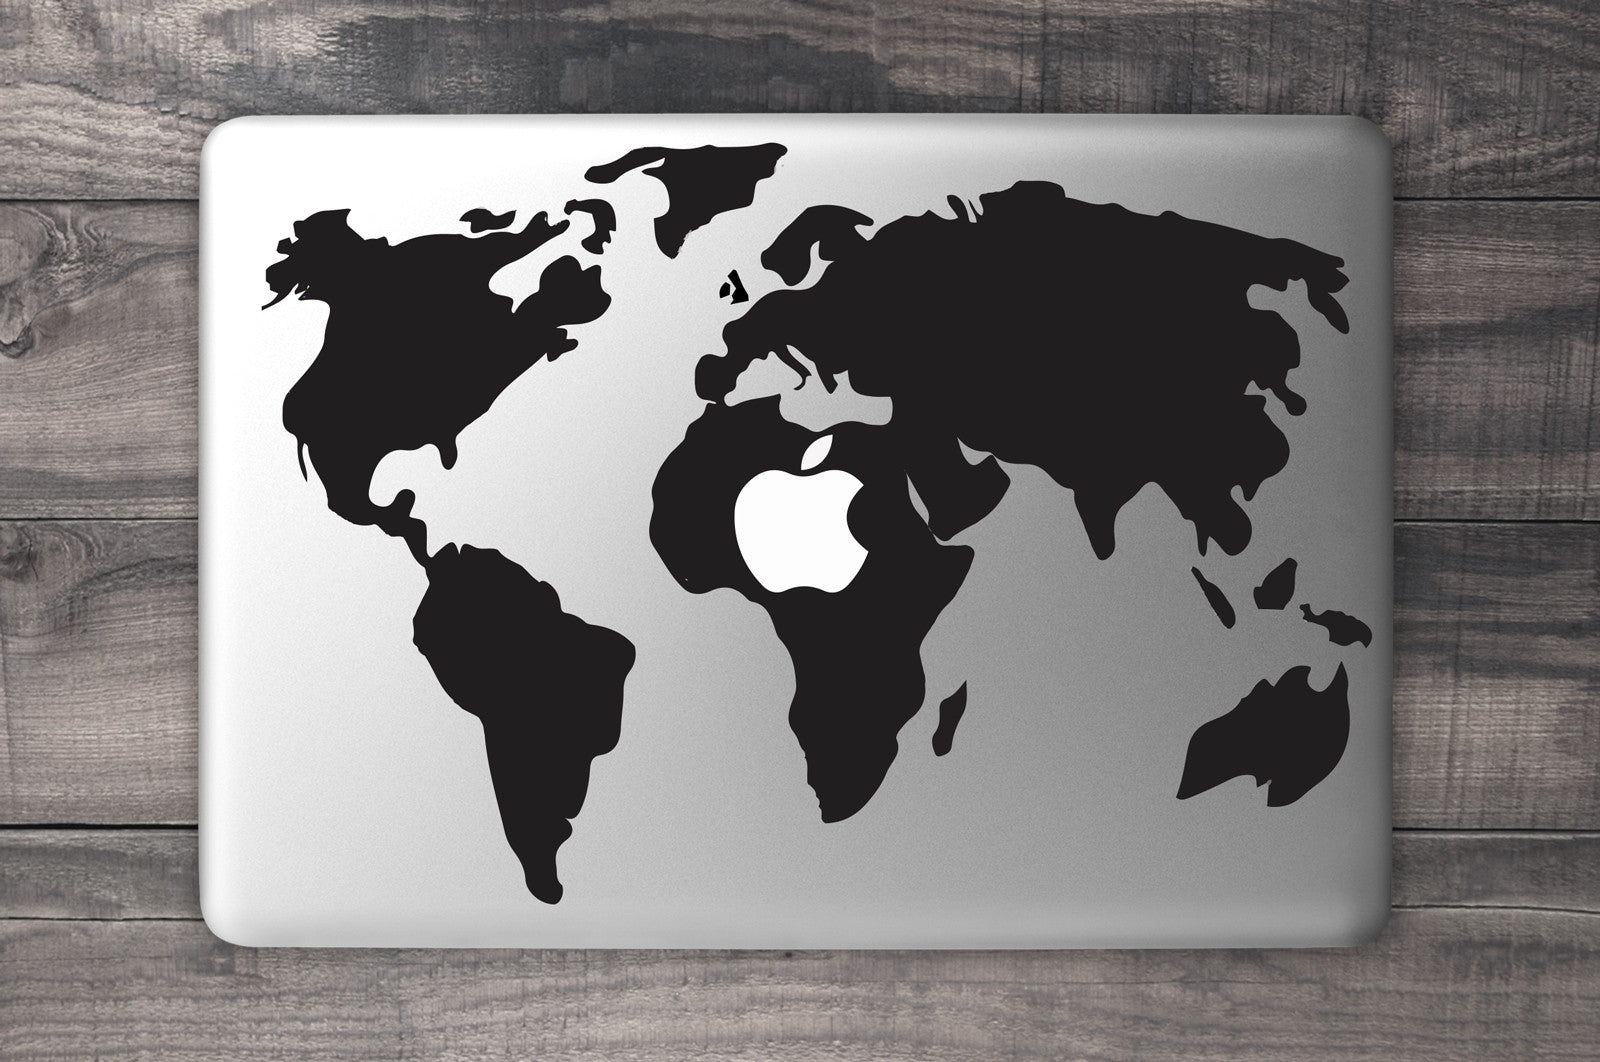 World map macbook decal vinyl infusion vinyl infusion world map macbook decal black gumiabroncs Image collections